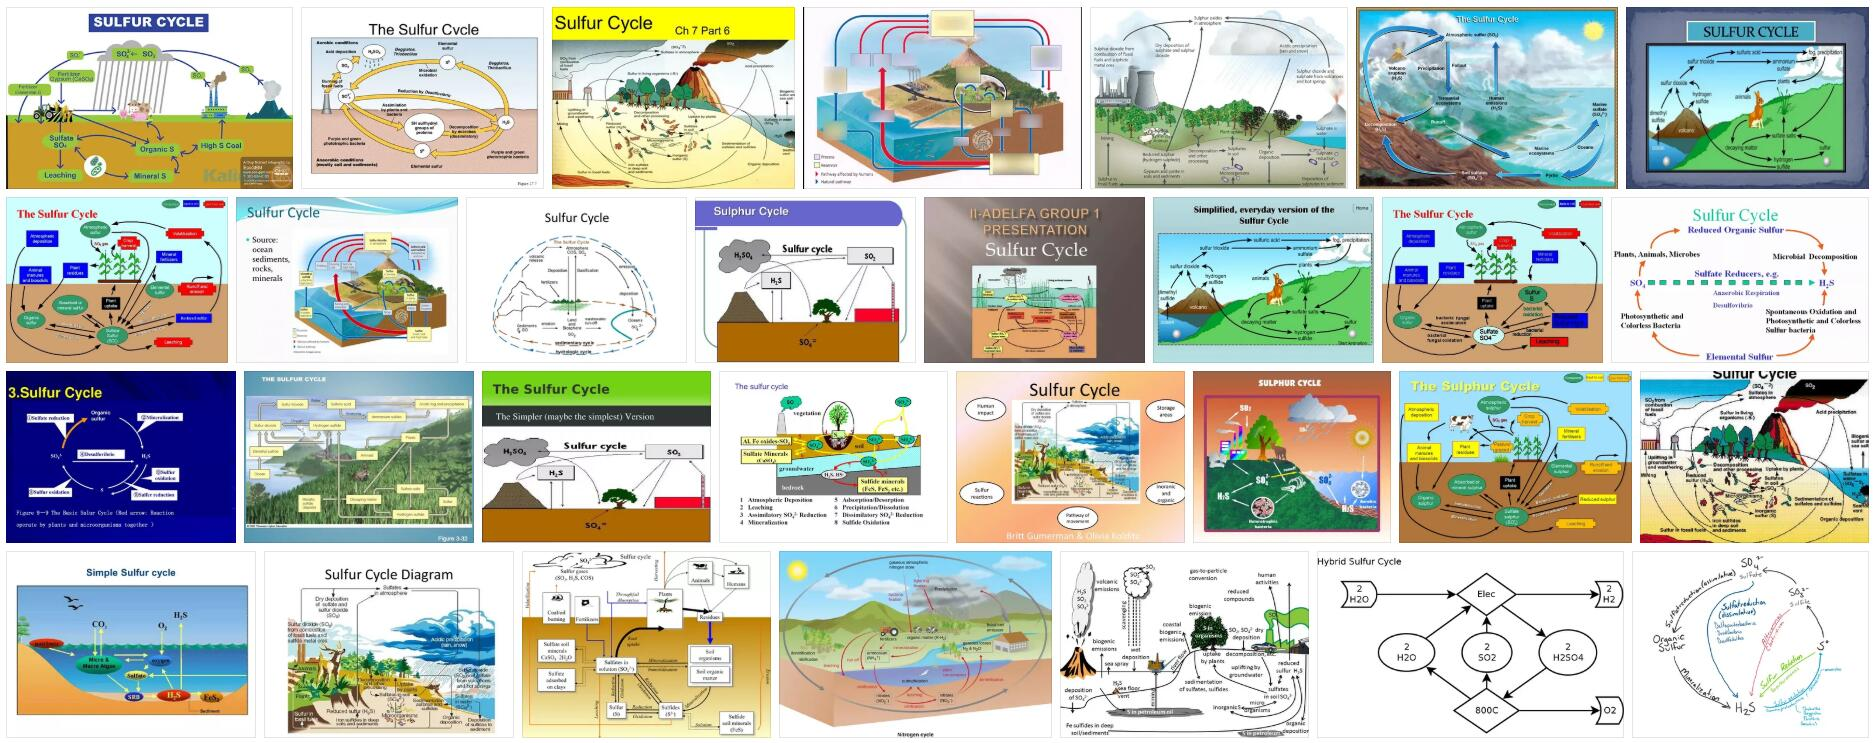 What is Sulfur Cycle